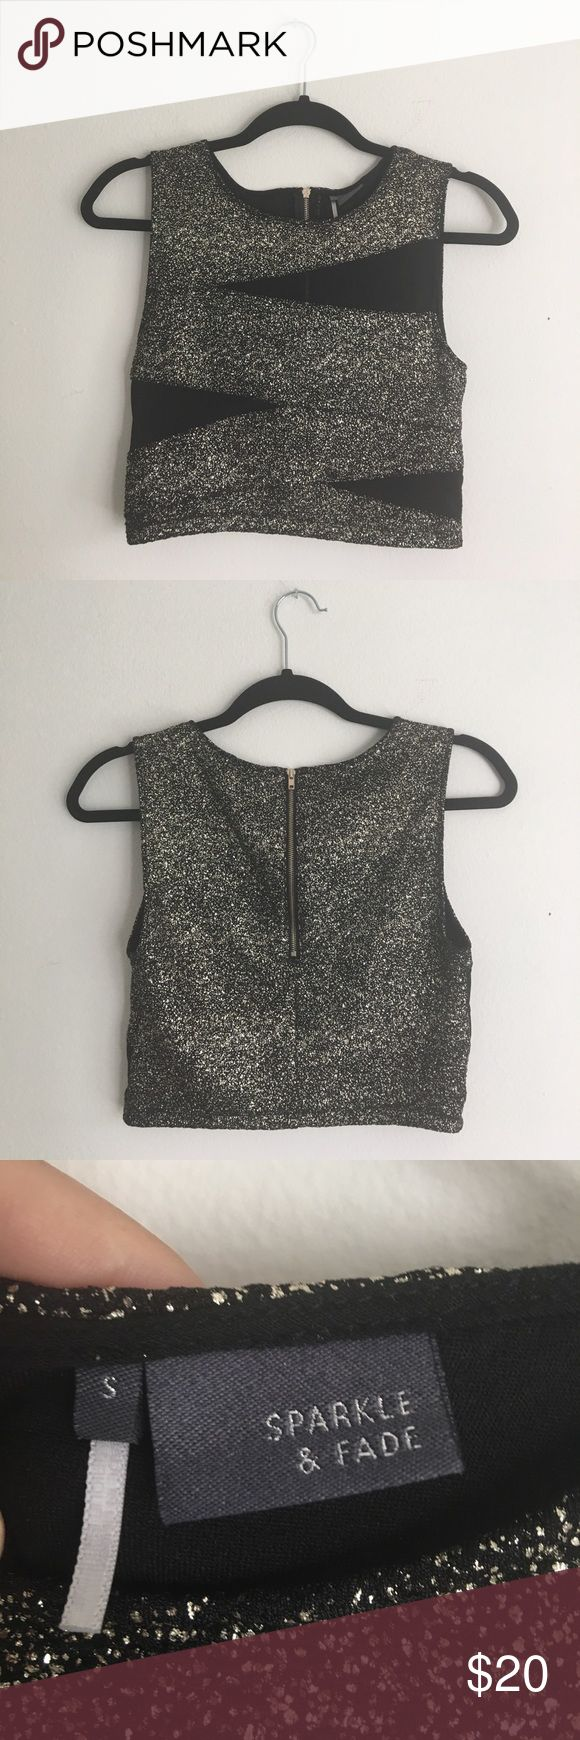 Sparkle & Fade | Crop Top Fun gold sparkly crop top with black sheer cutouts. Size small with back zip. Stretchy fabric and in excellent condition. Sparkle & Fade Tops Crop Tops